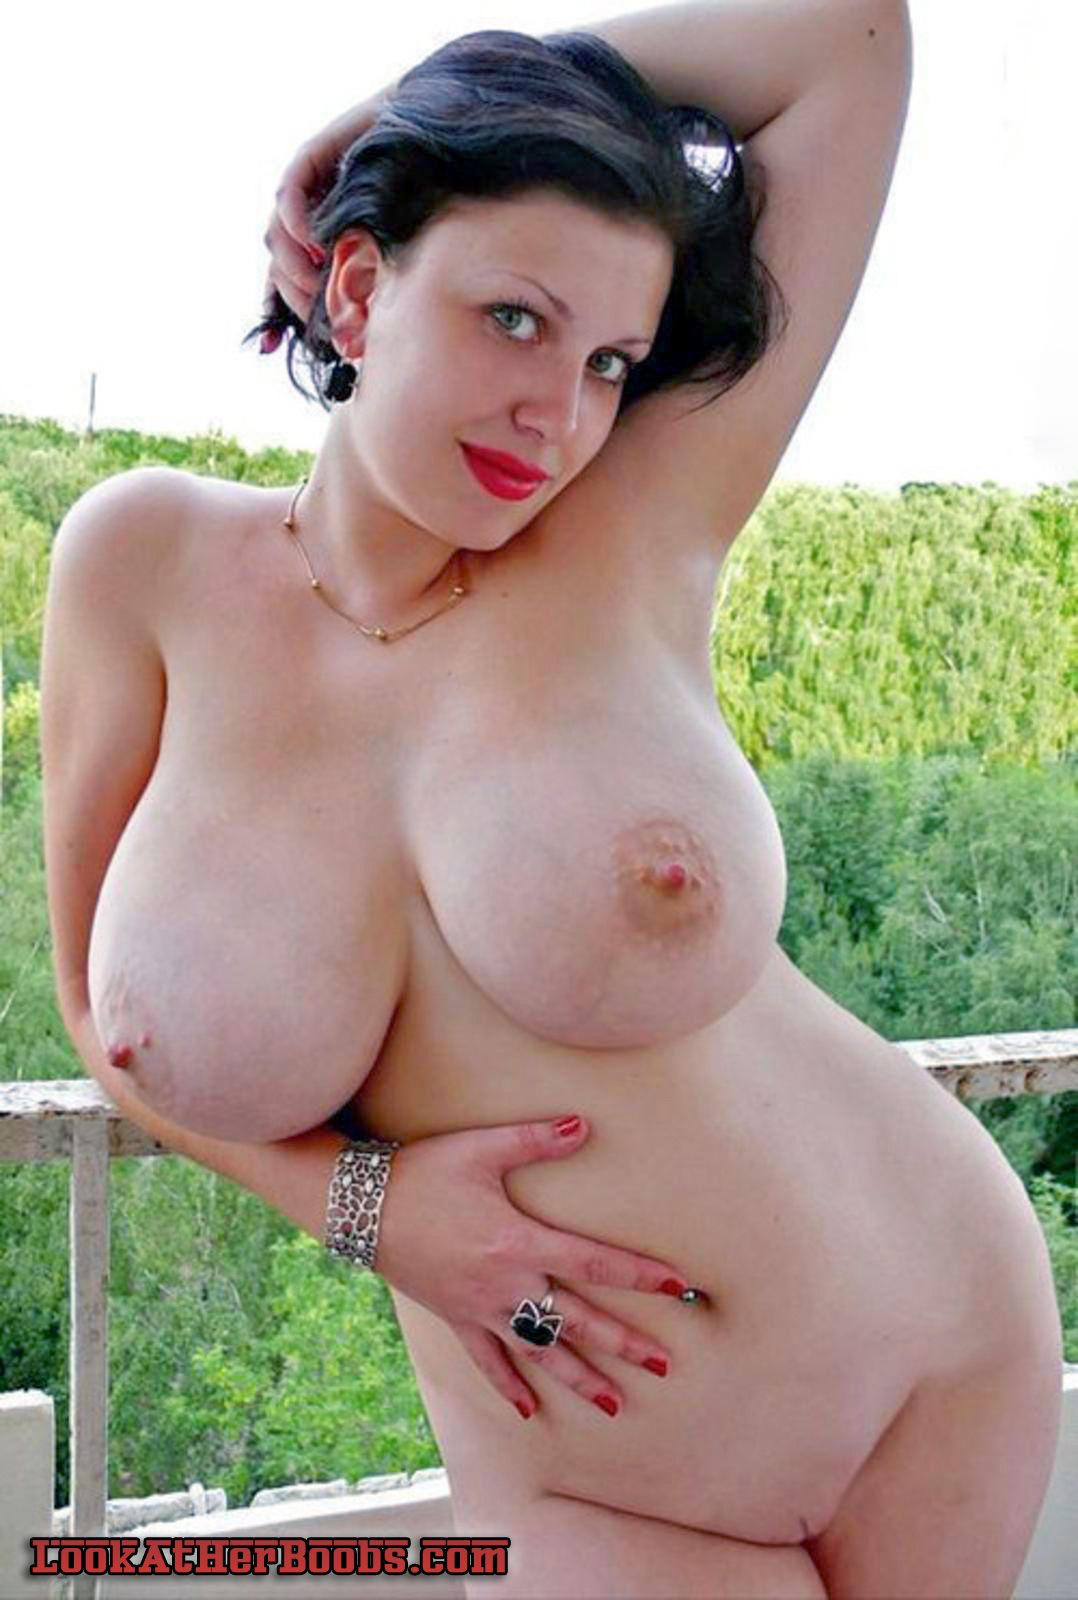 Sexy girls with big tits naked-1369